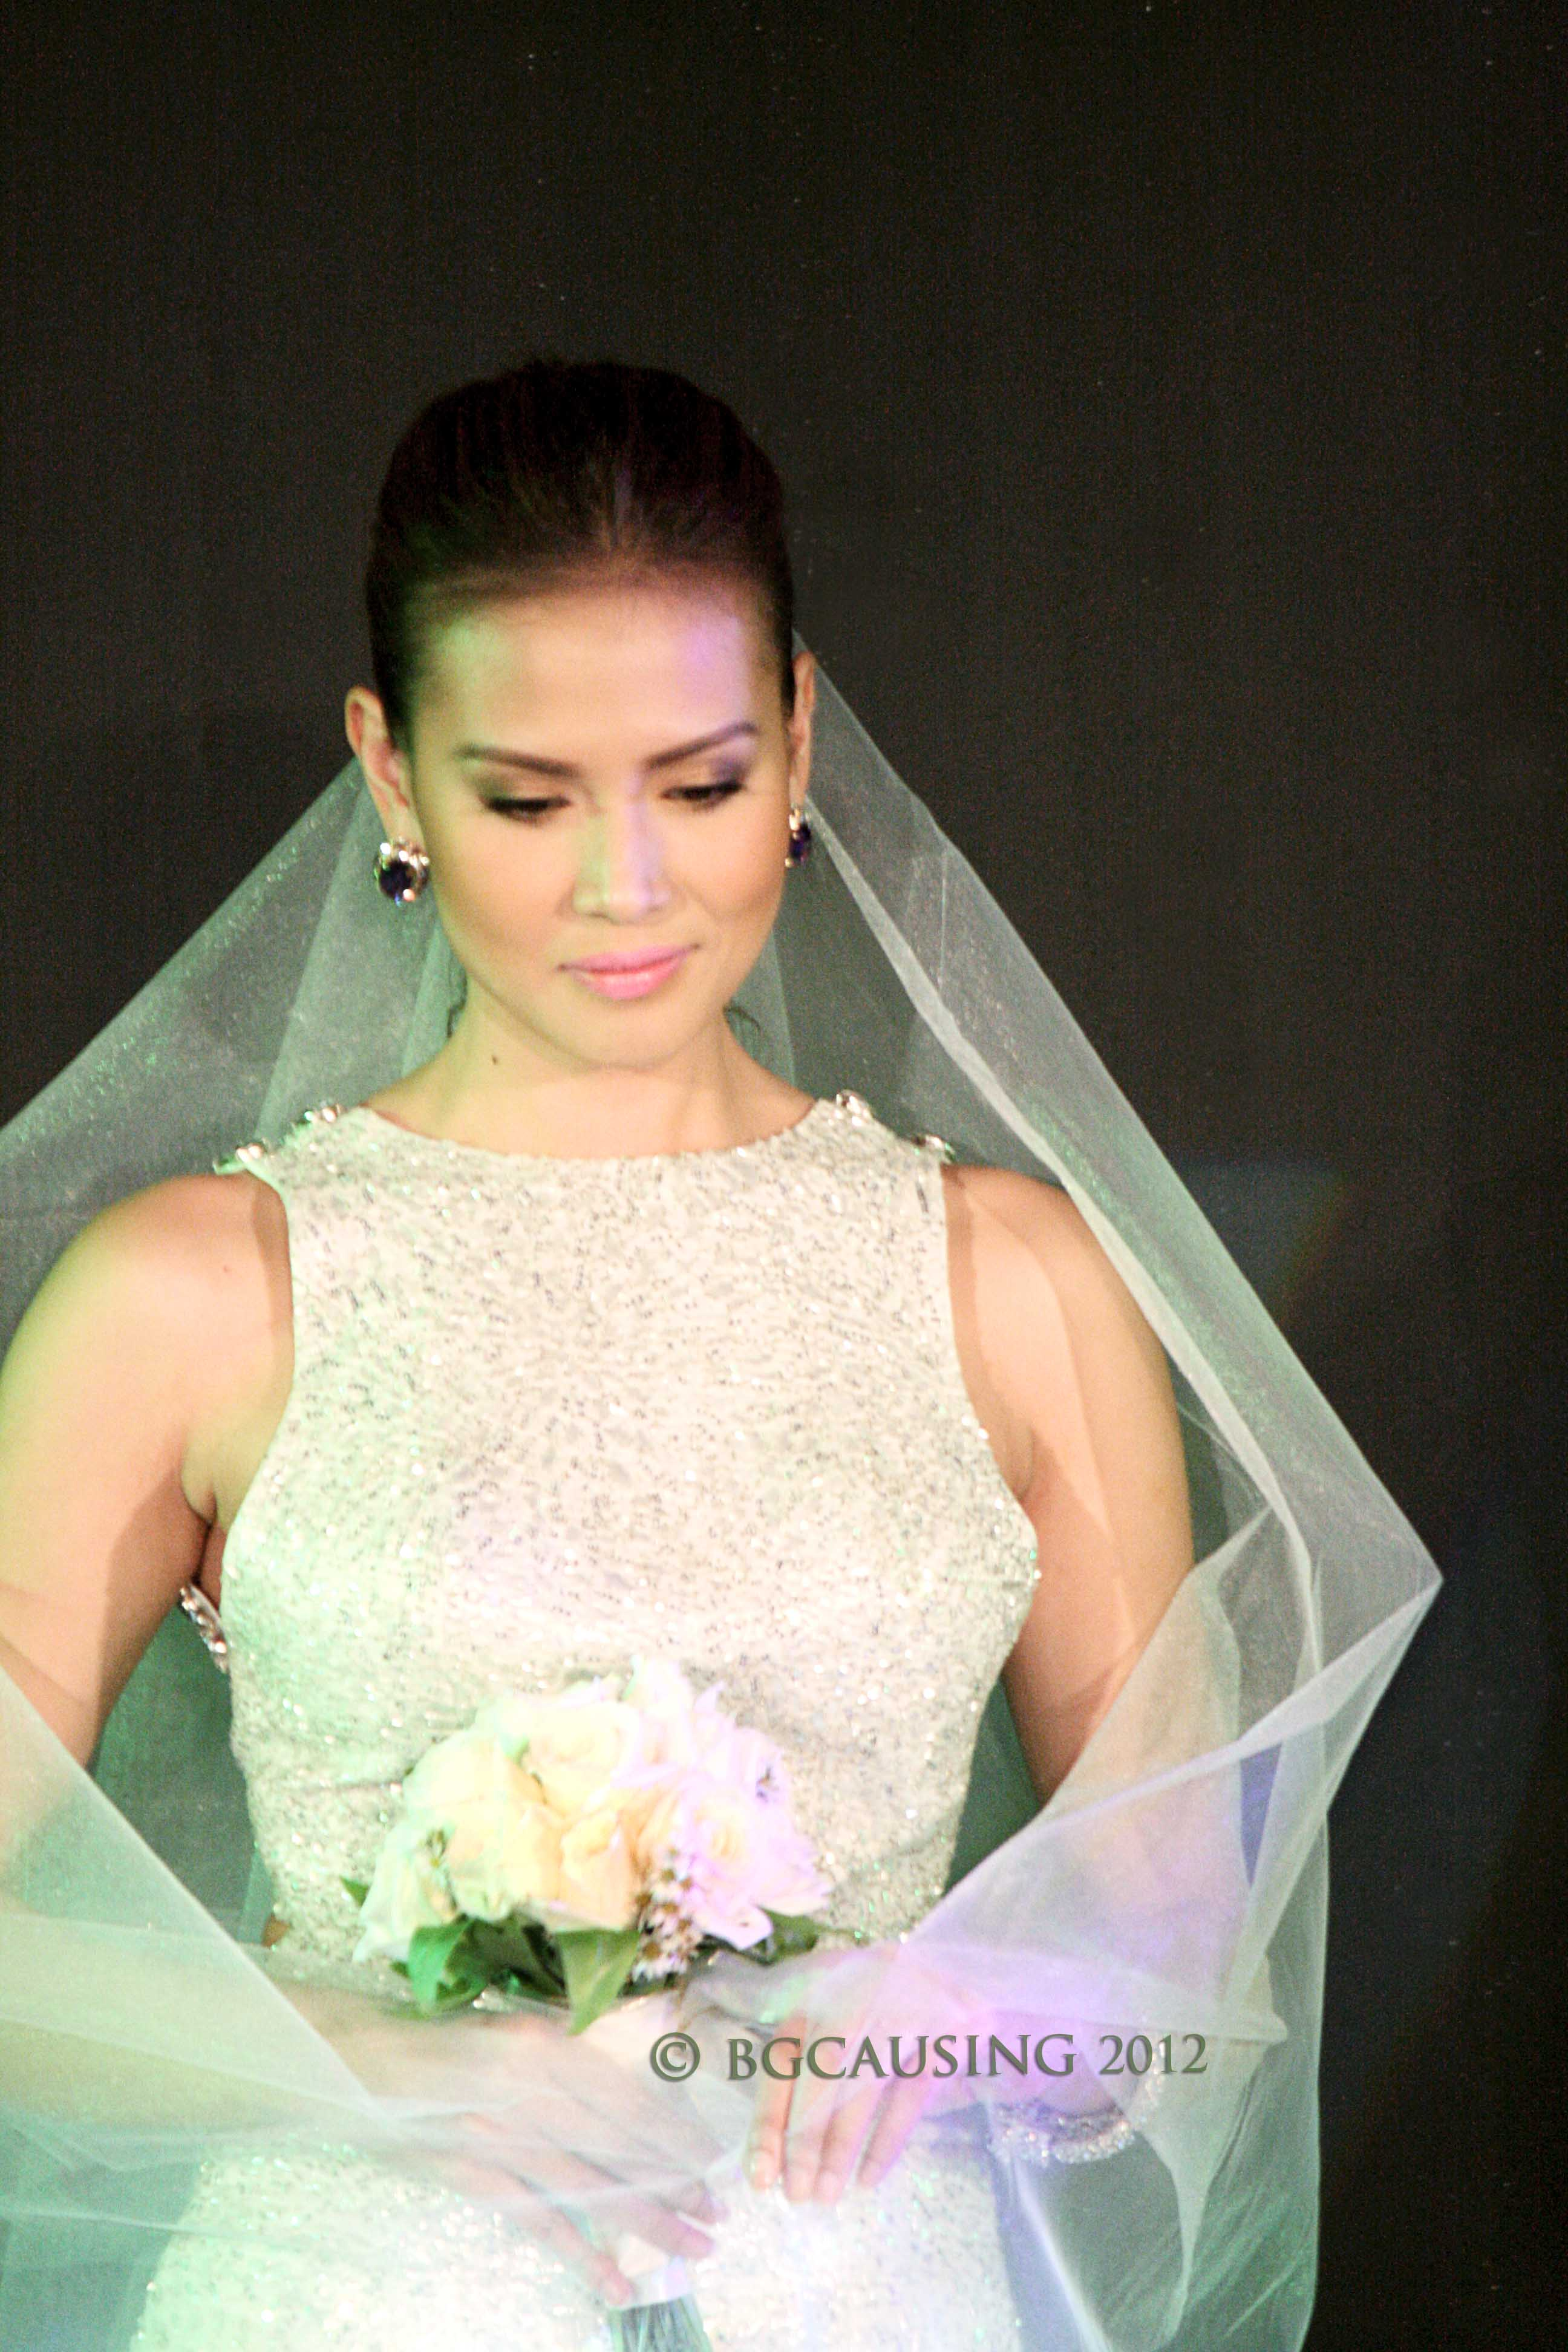 manalo for the bride